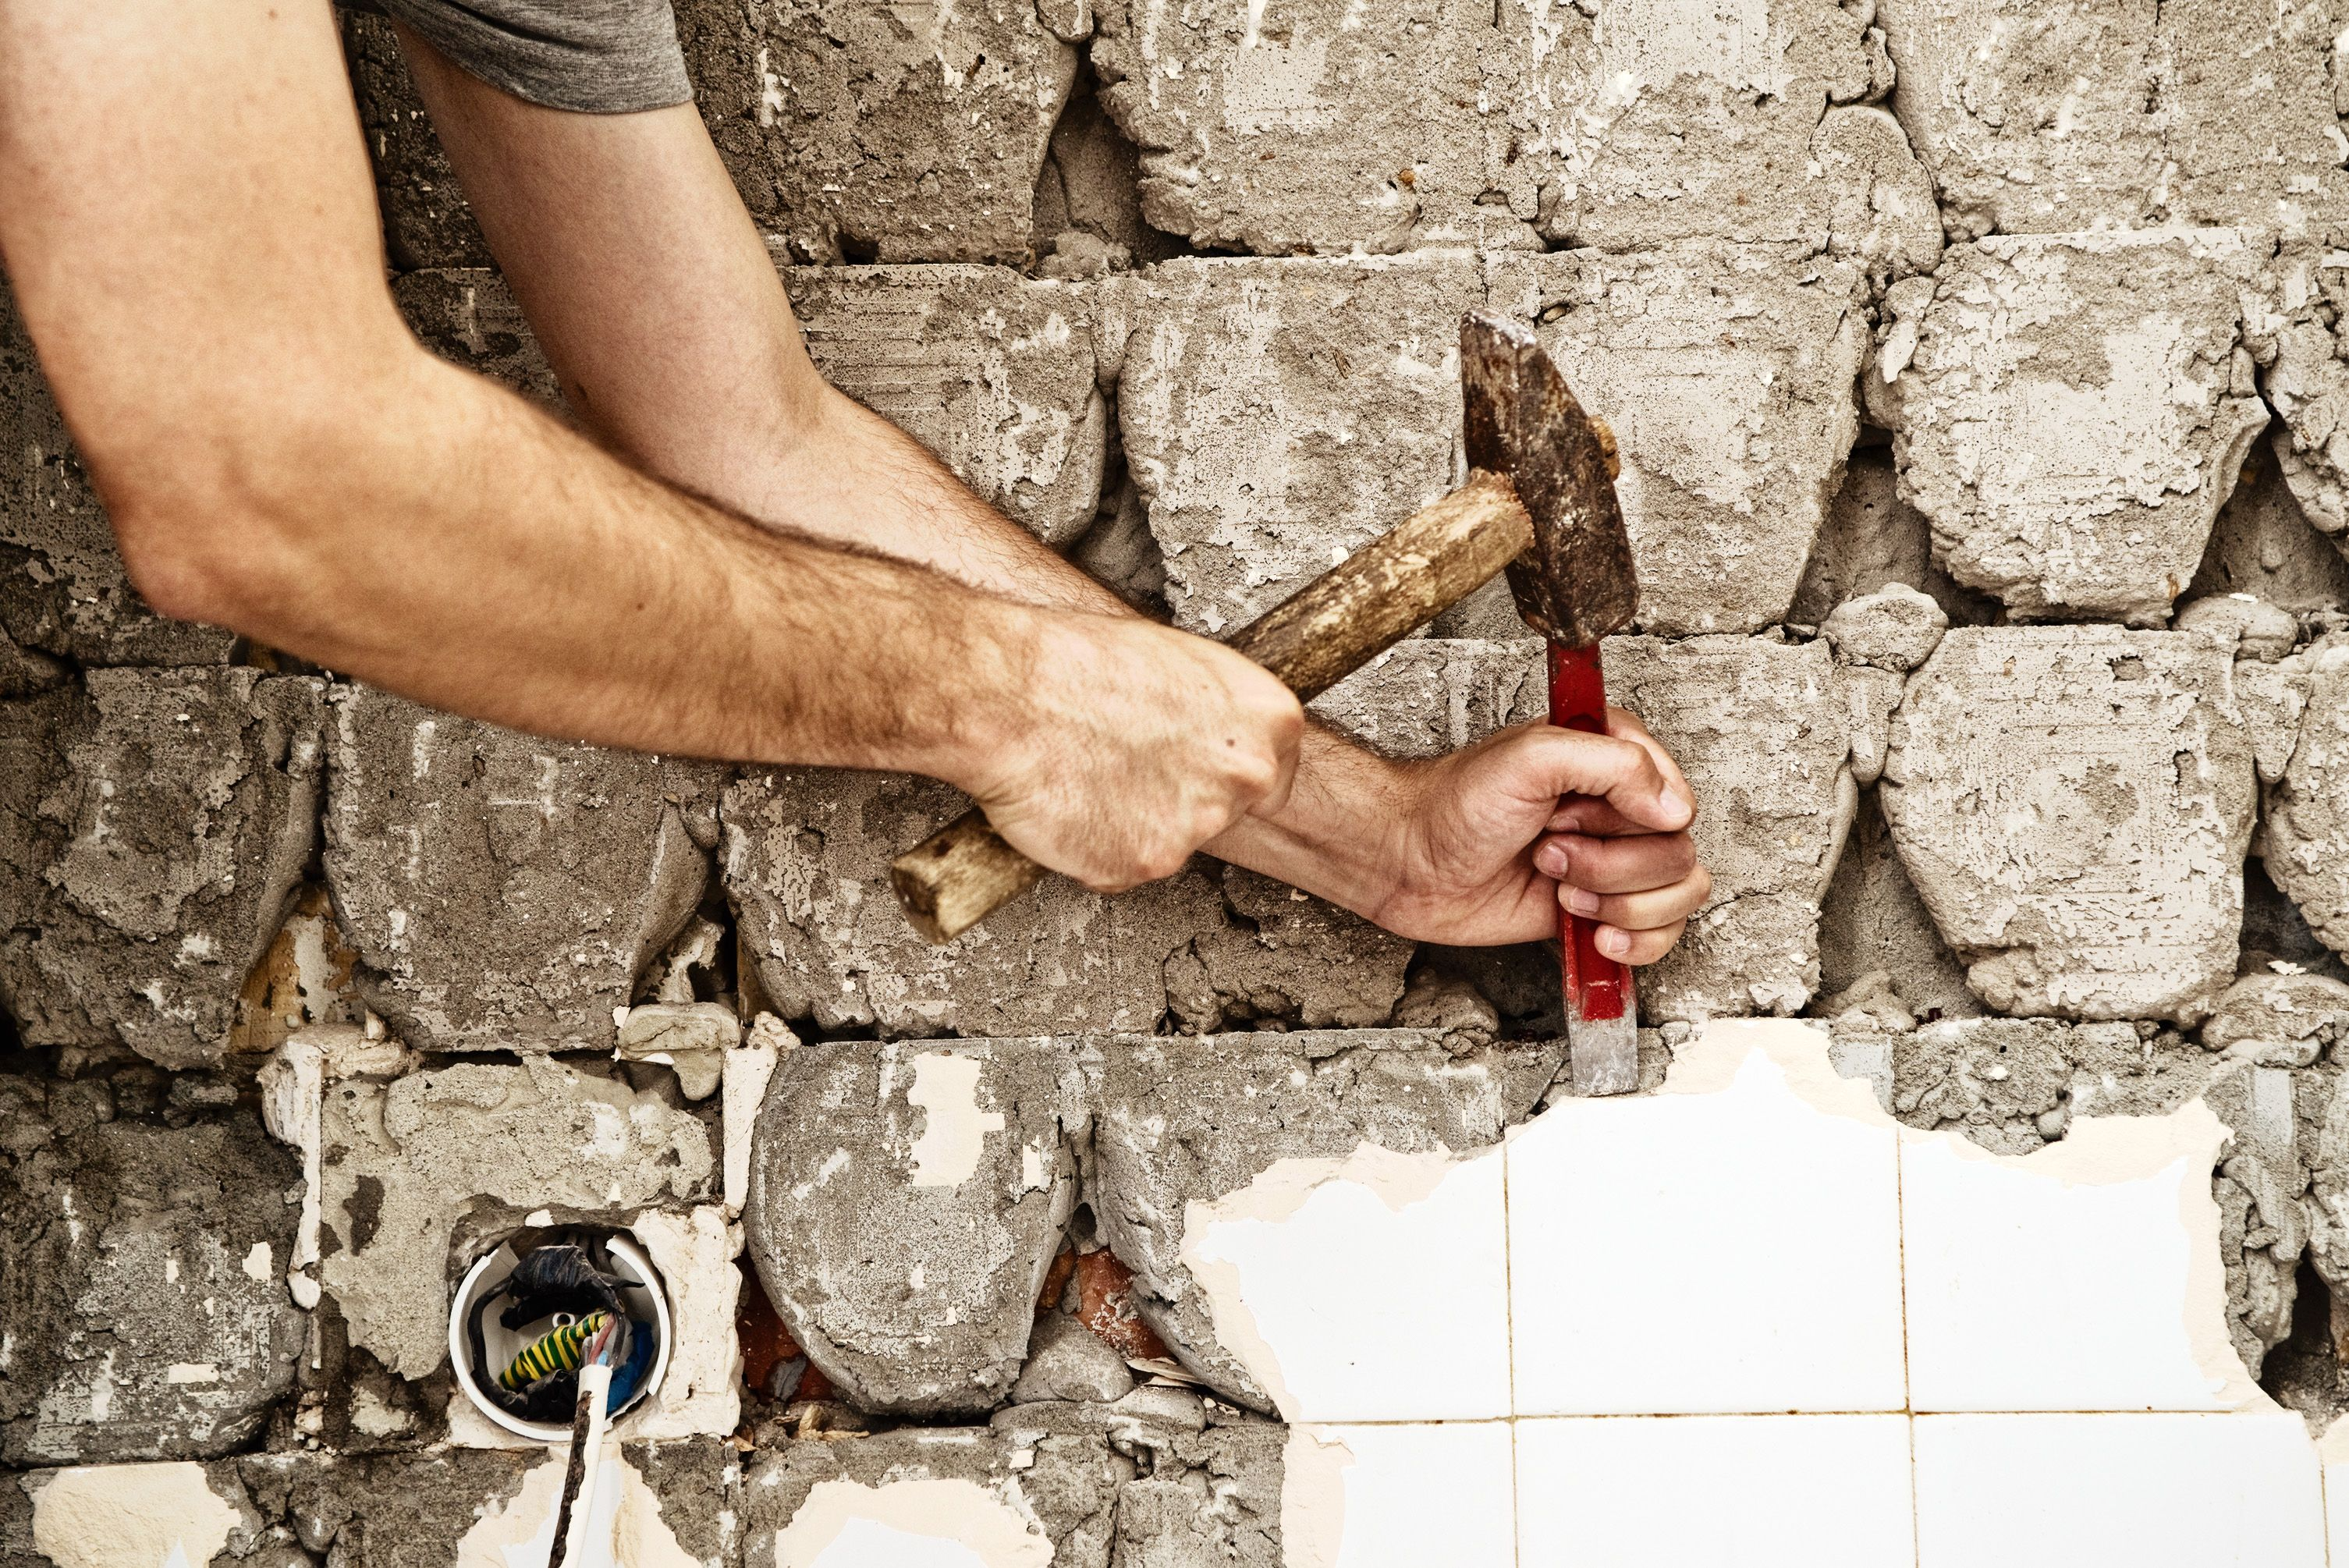 How to remove tile backsplash without damaging drywall